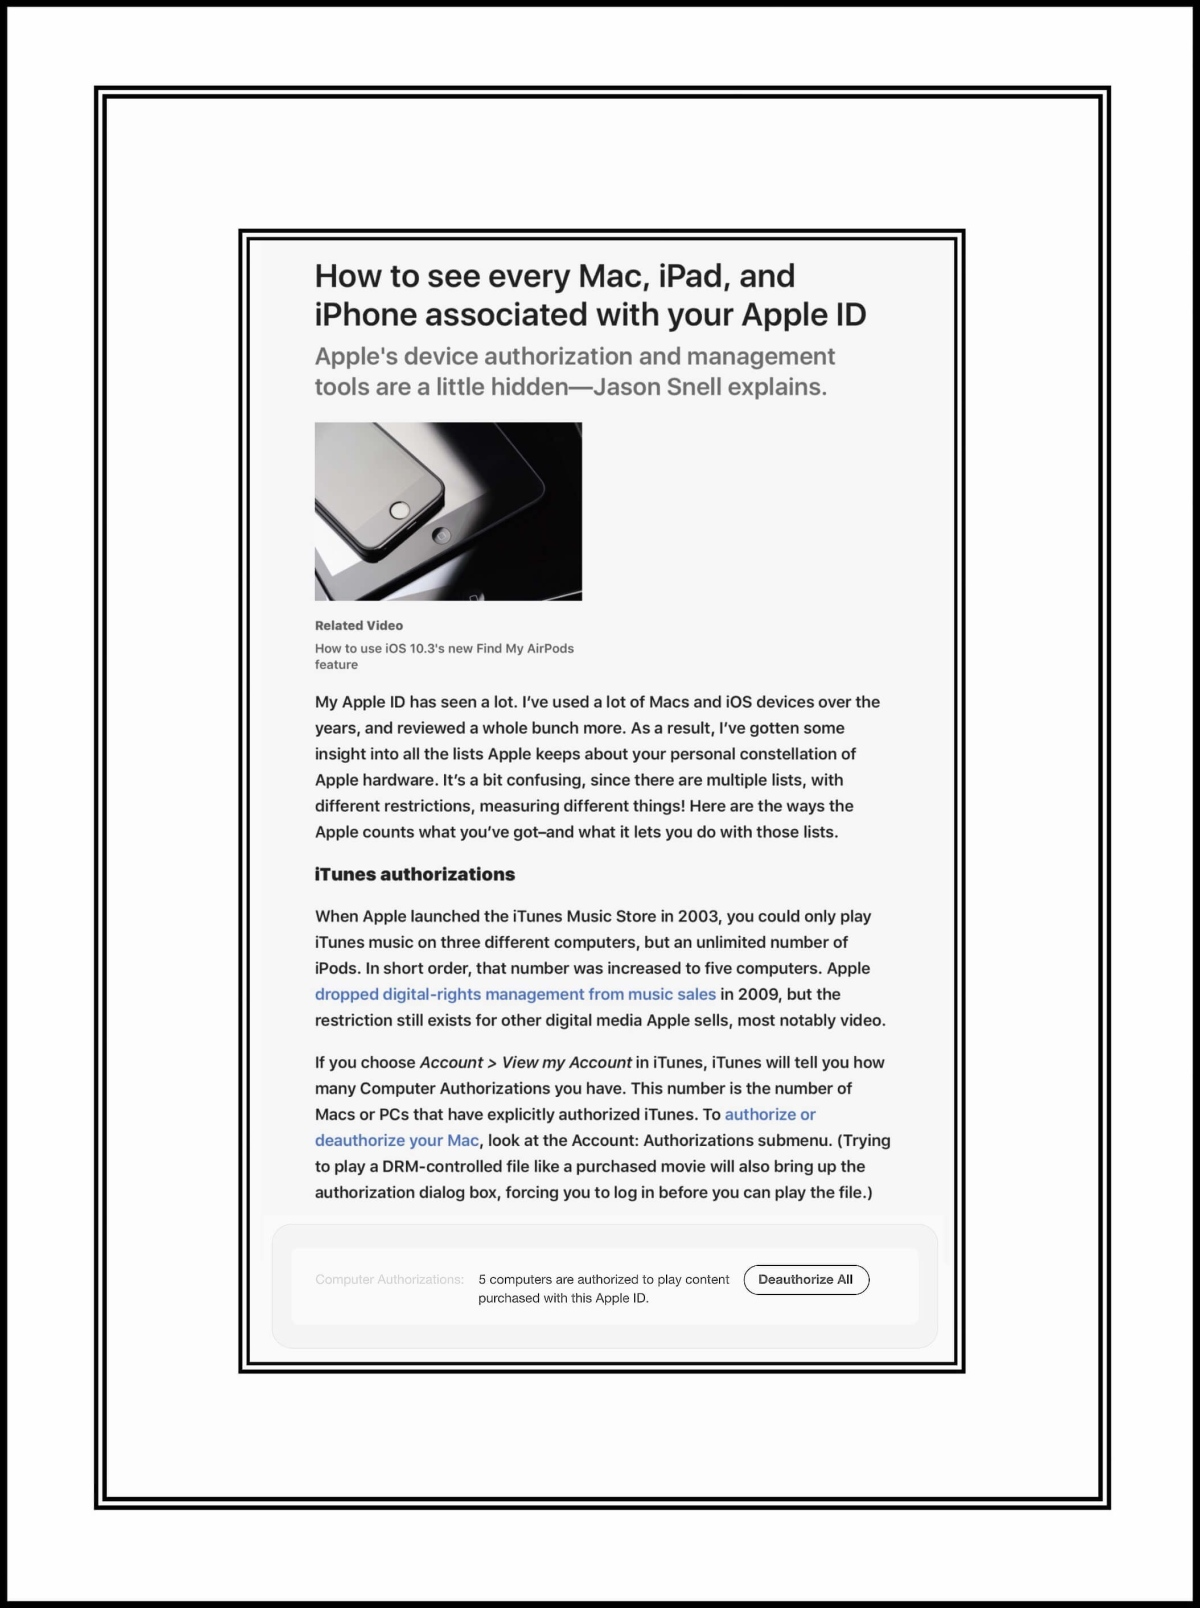 MacWorld Article by Jason Snell